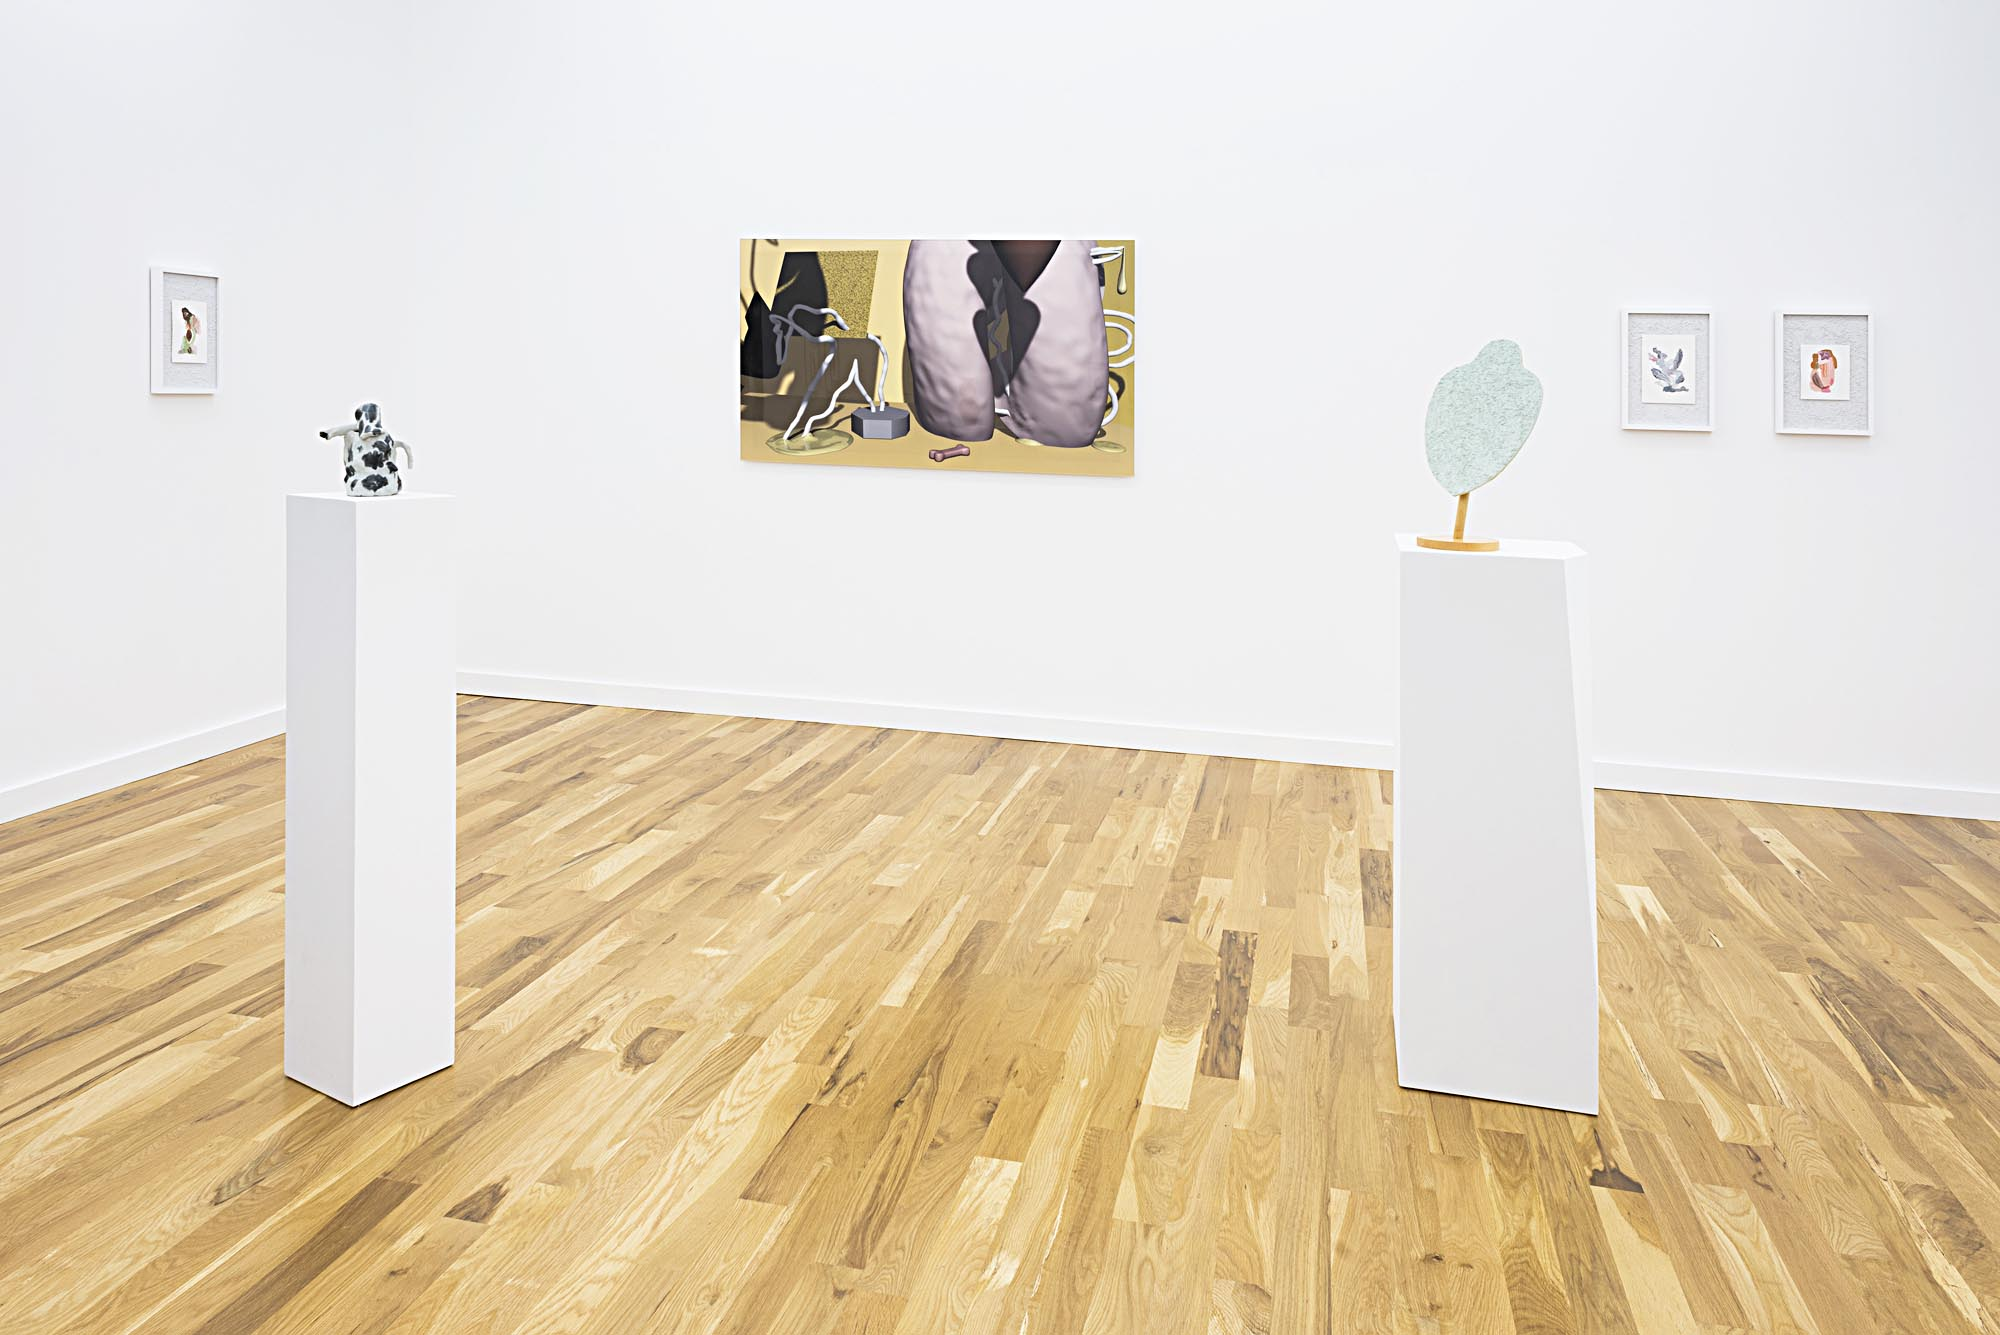 Salves Installation view at Western Exhibitions, September 9 to October 28, 2017